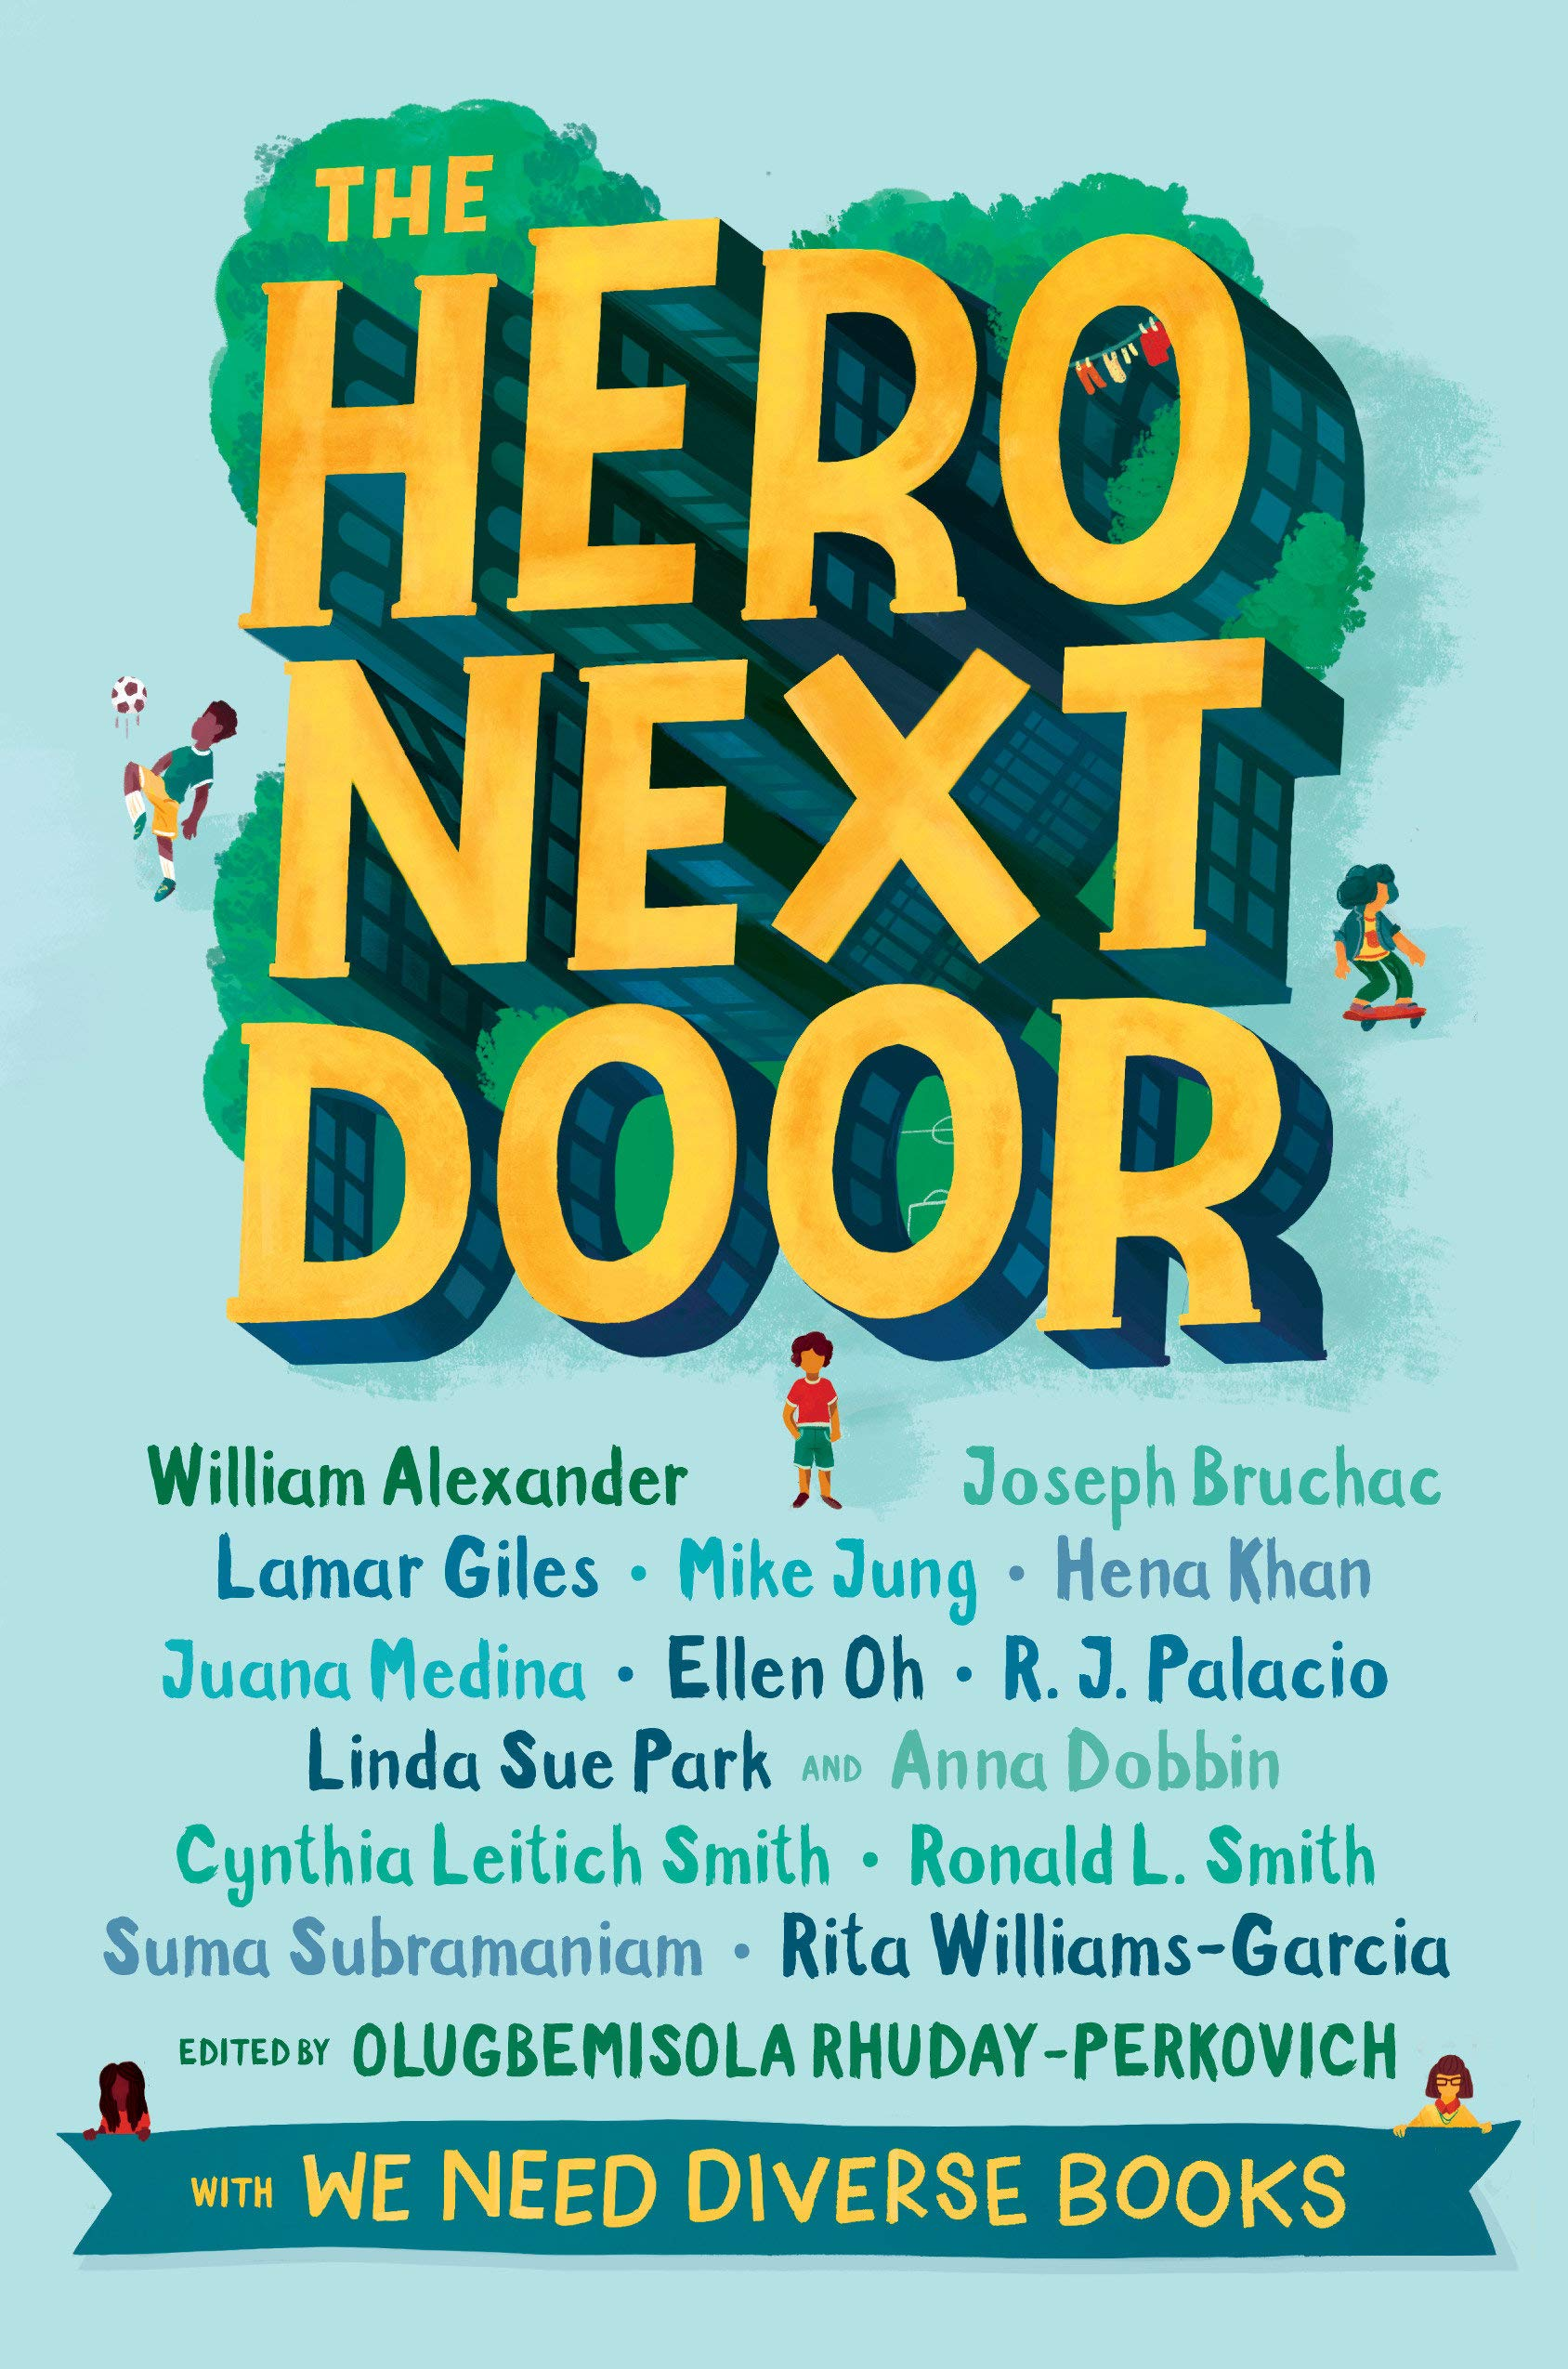 The Hero Next Door 30 of The Best Middle School Read-Aloud Books